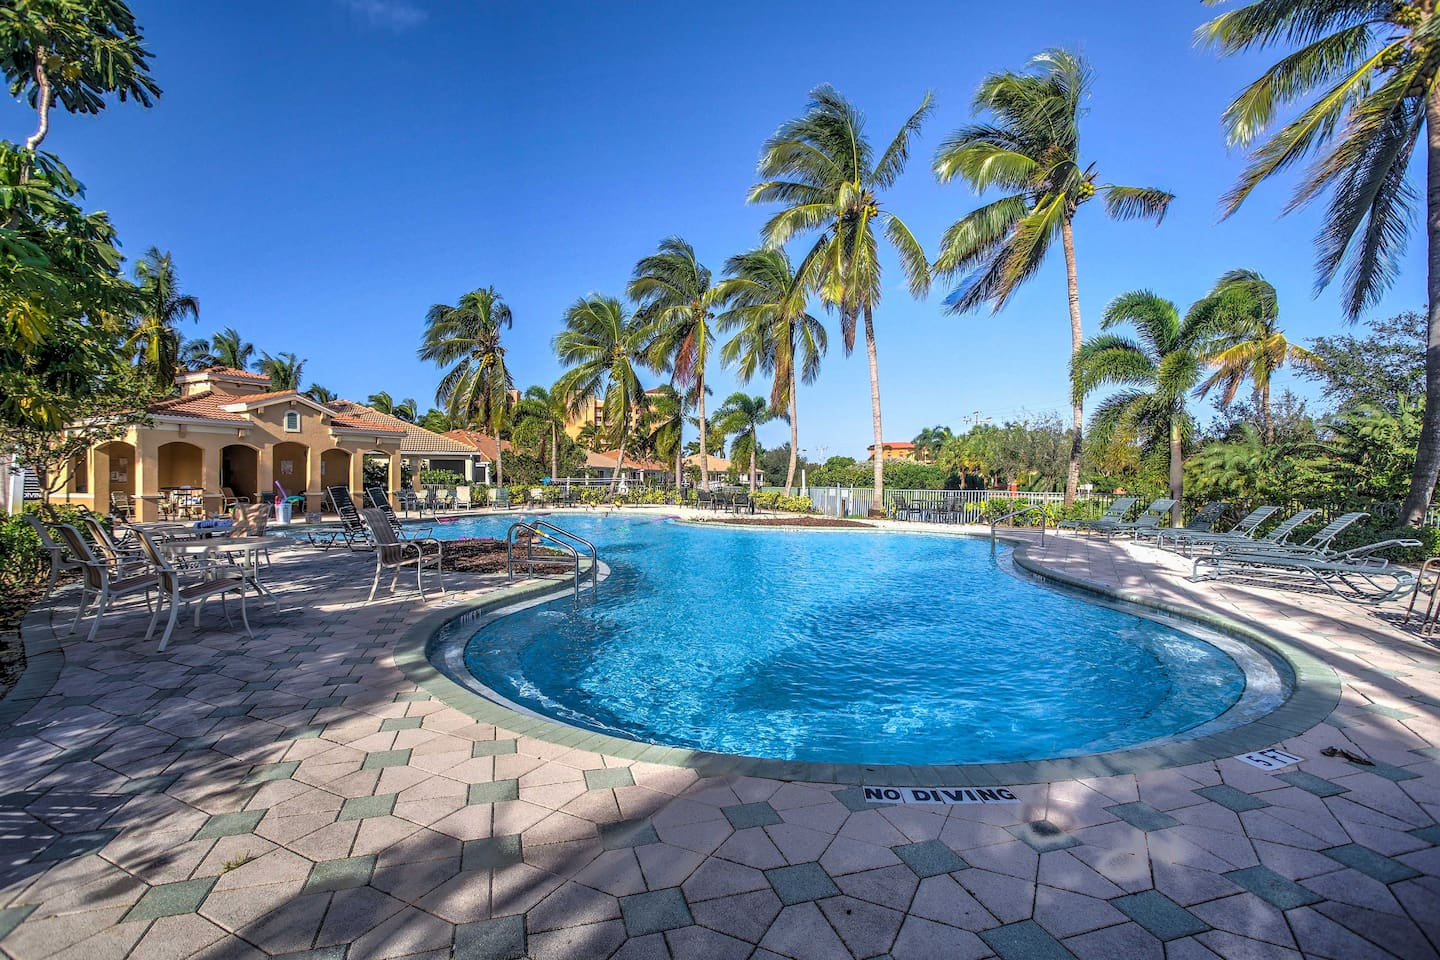 Fun in the sun awaits when you stay at this vacation rental unit in Punta Gorda.